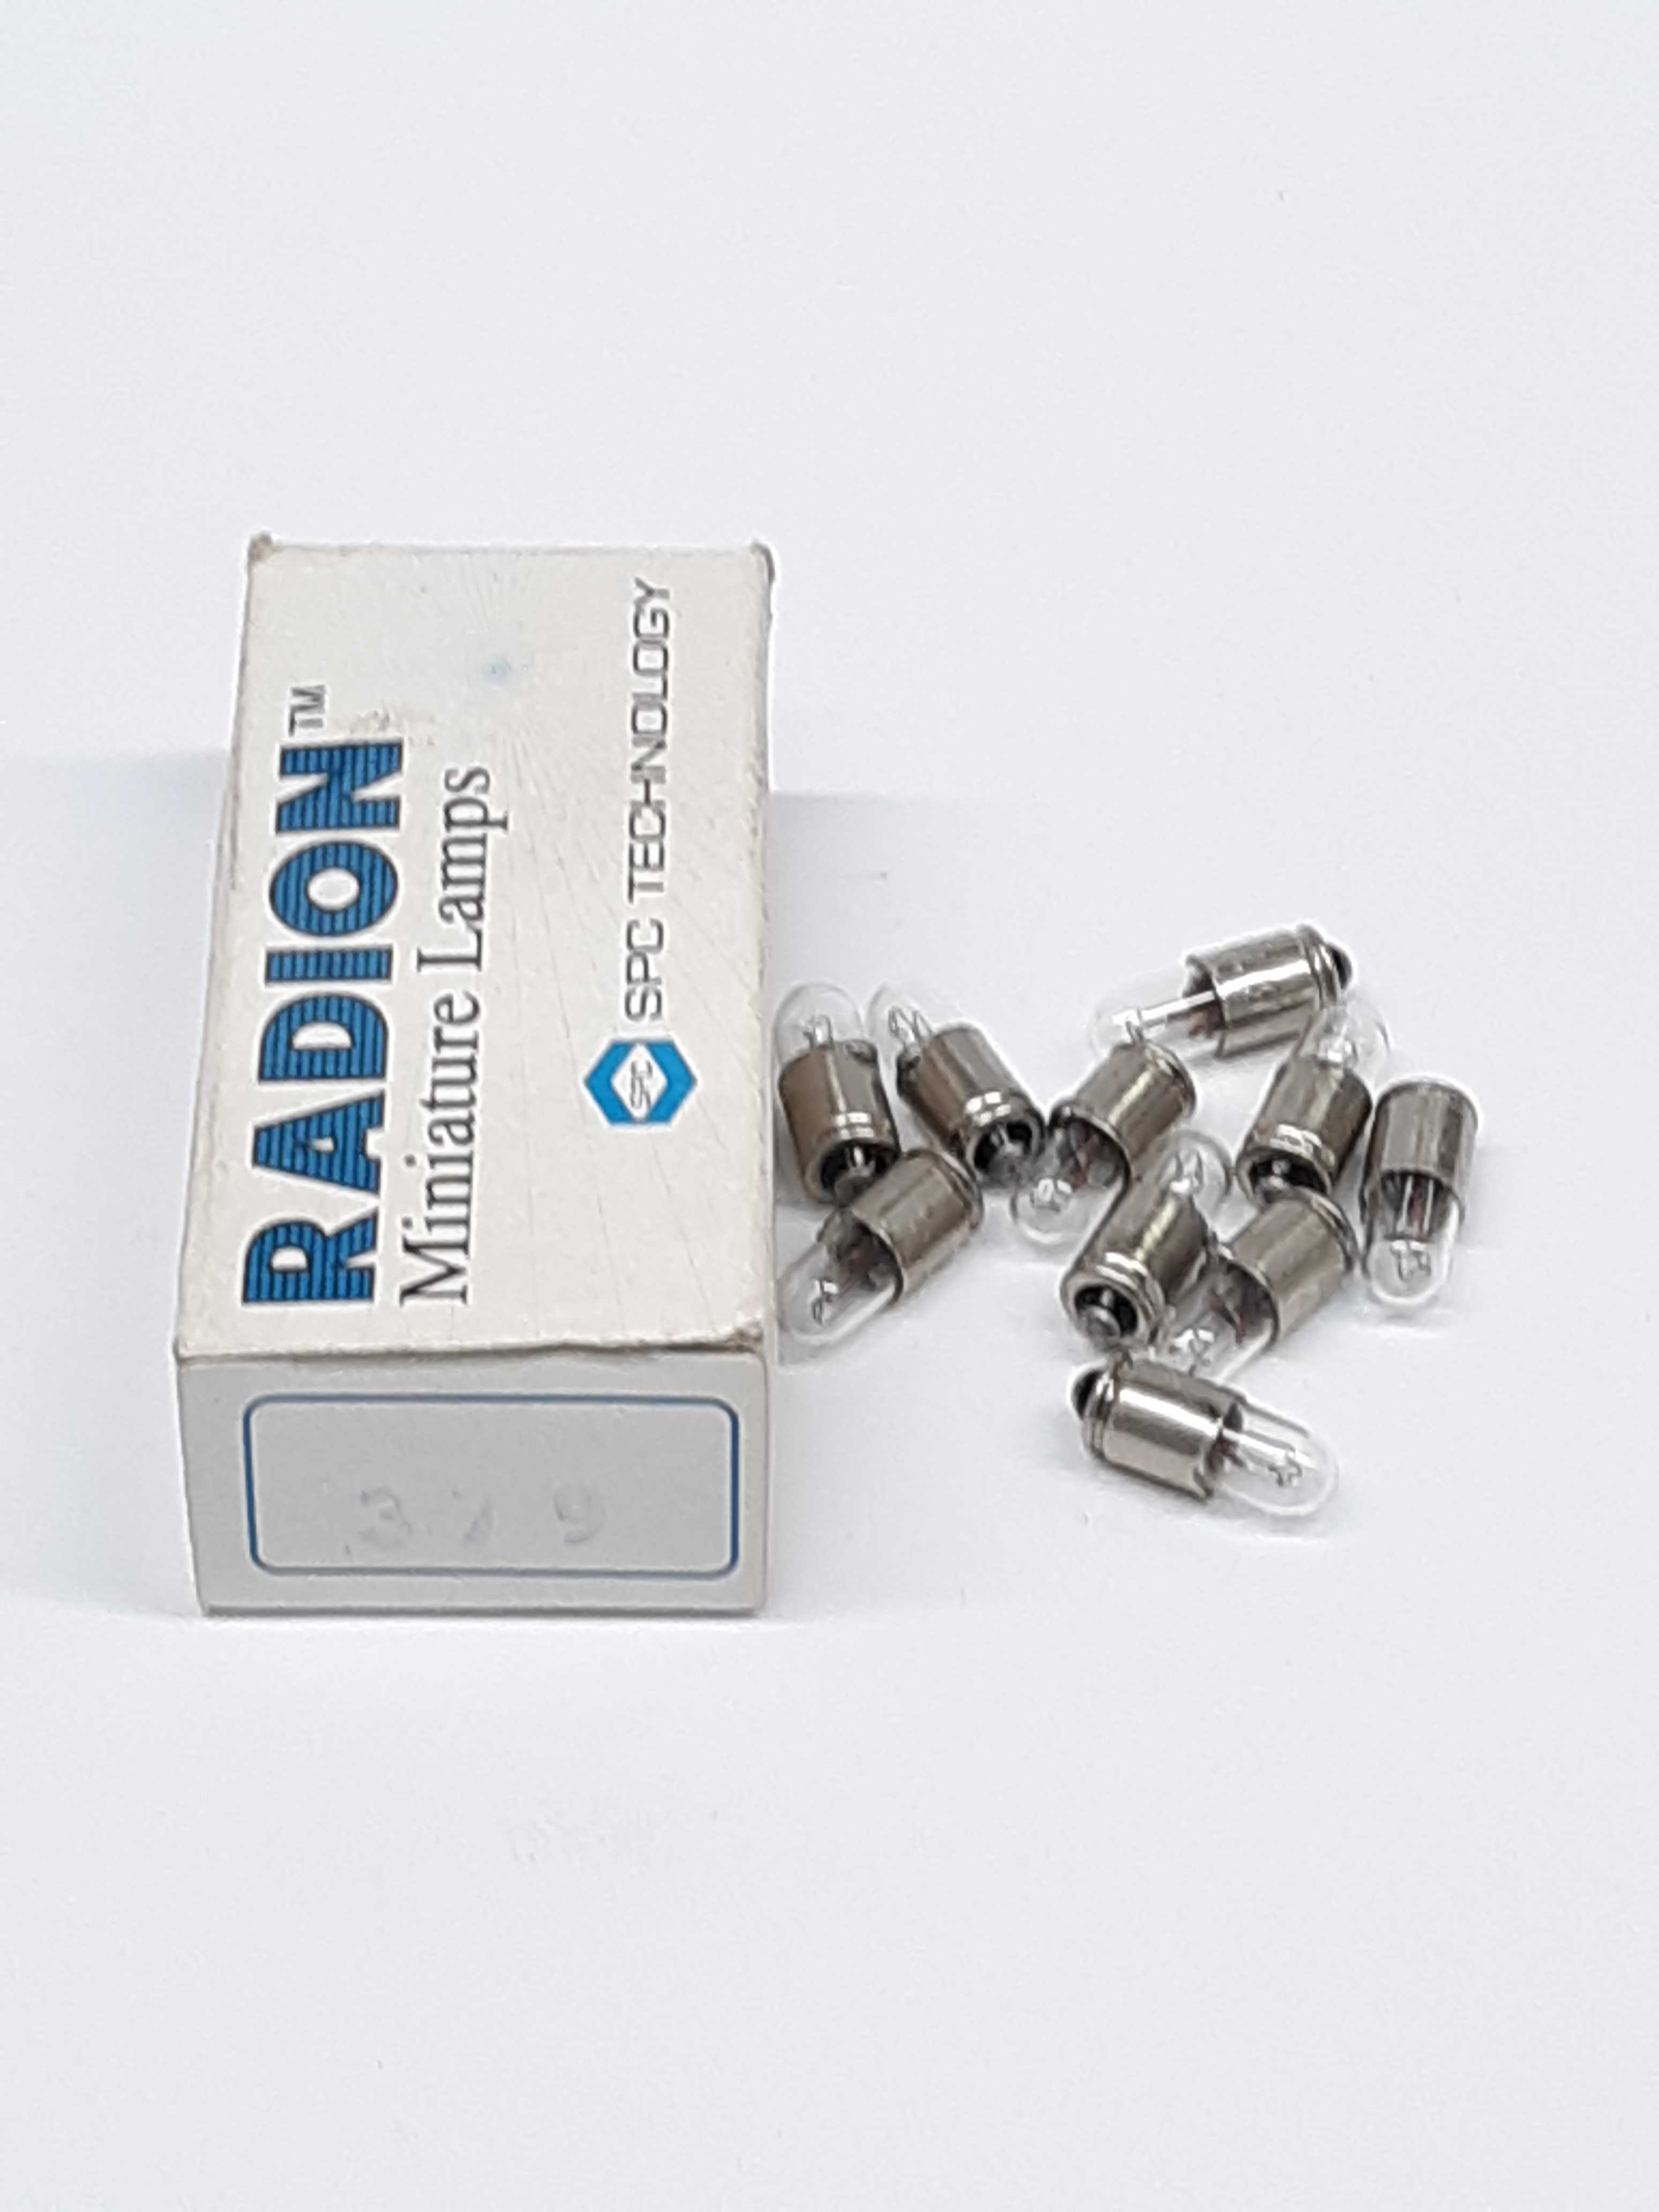 Radion SPC Technology 379 Miniature Lamps Lot of 10